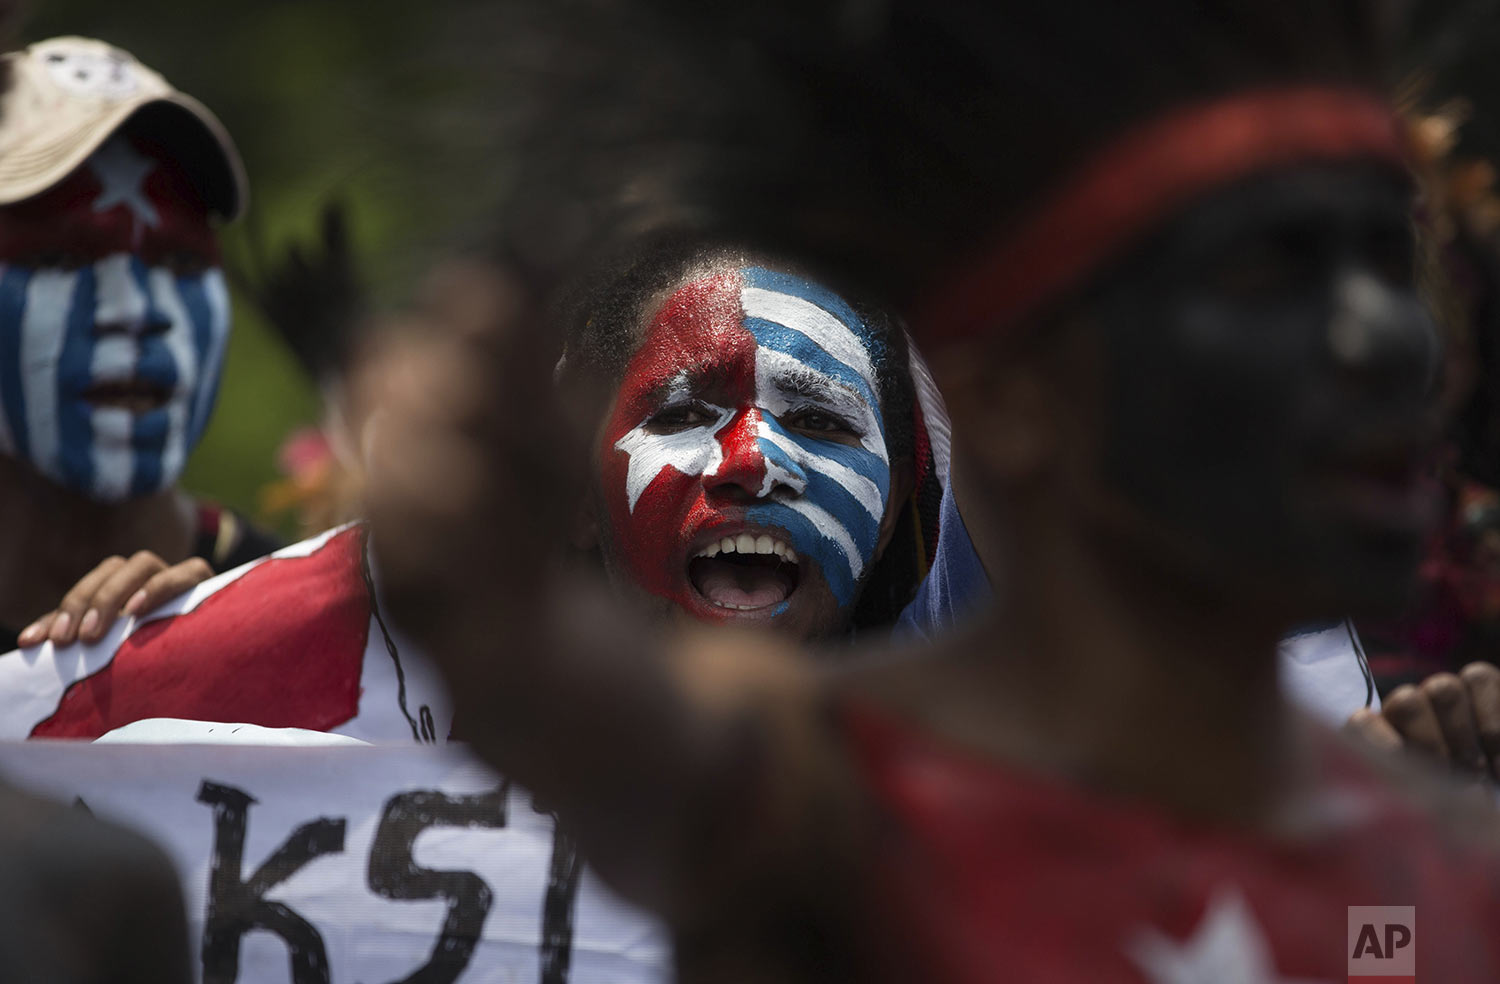 Papuan students, with their body and face painted with the colors of the banned separatist 'Morning Star' flag, shout slogans during a rally in Medan, North Sumatra, Indonesia, Saturday, Aug. 31, 2019. (AP Photo/Binsar Bakkara)